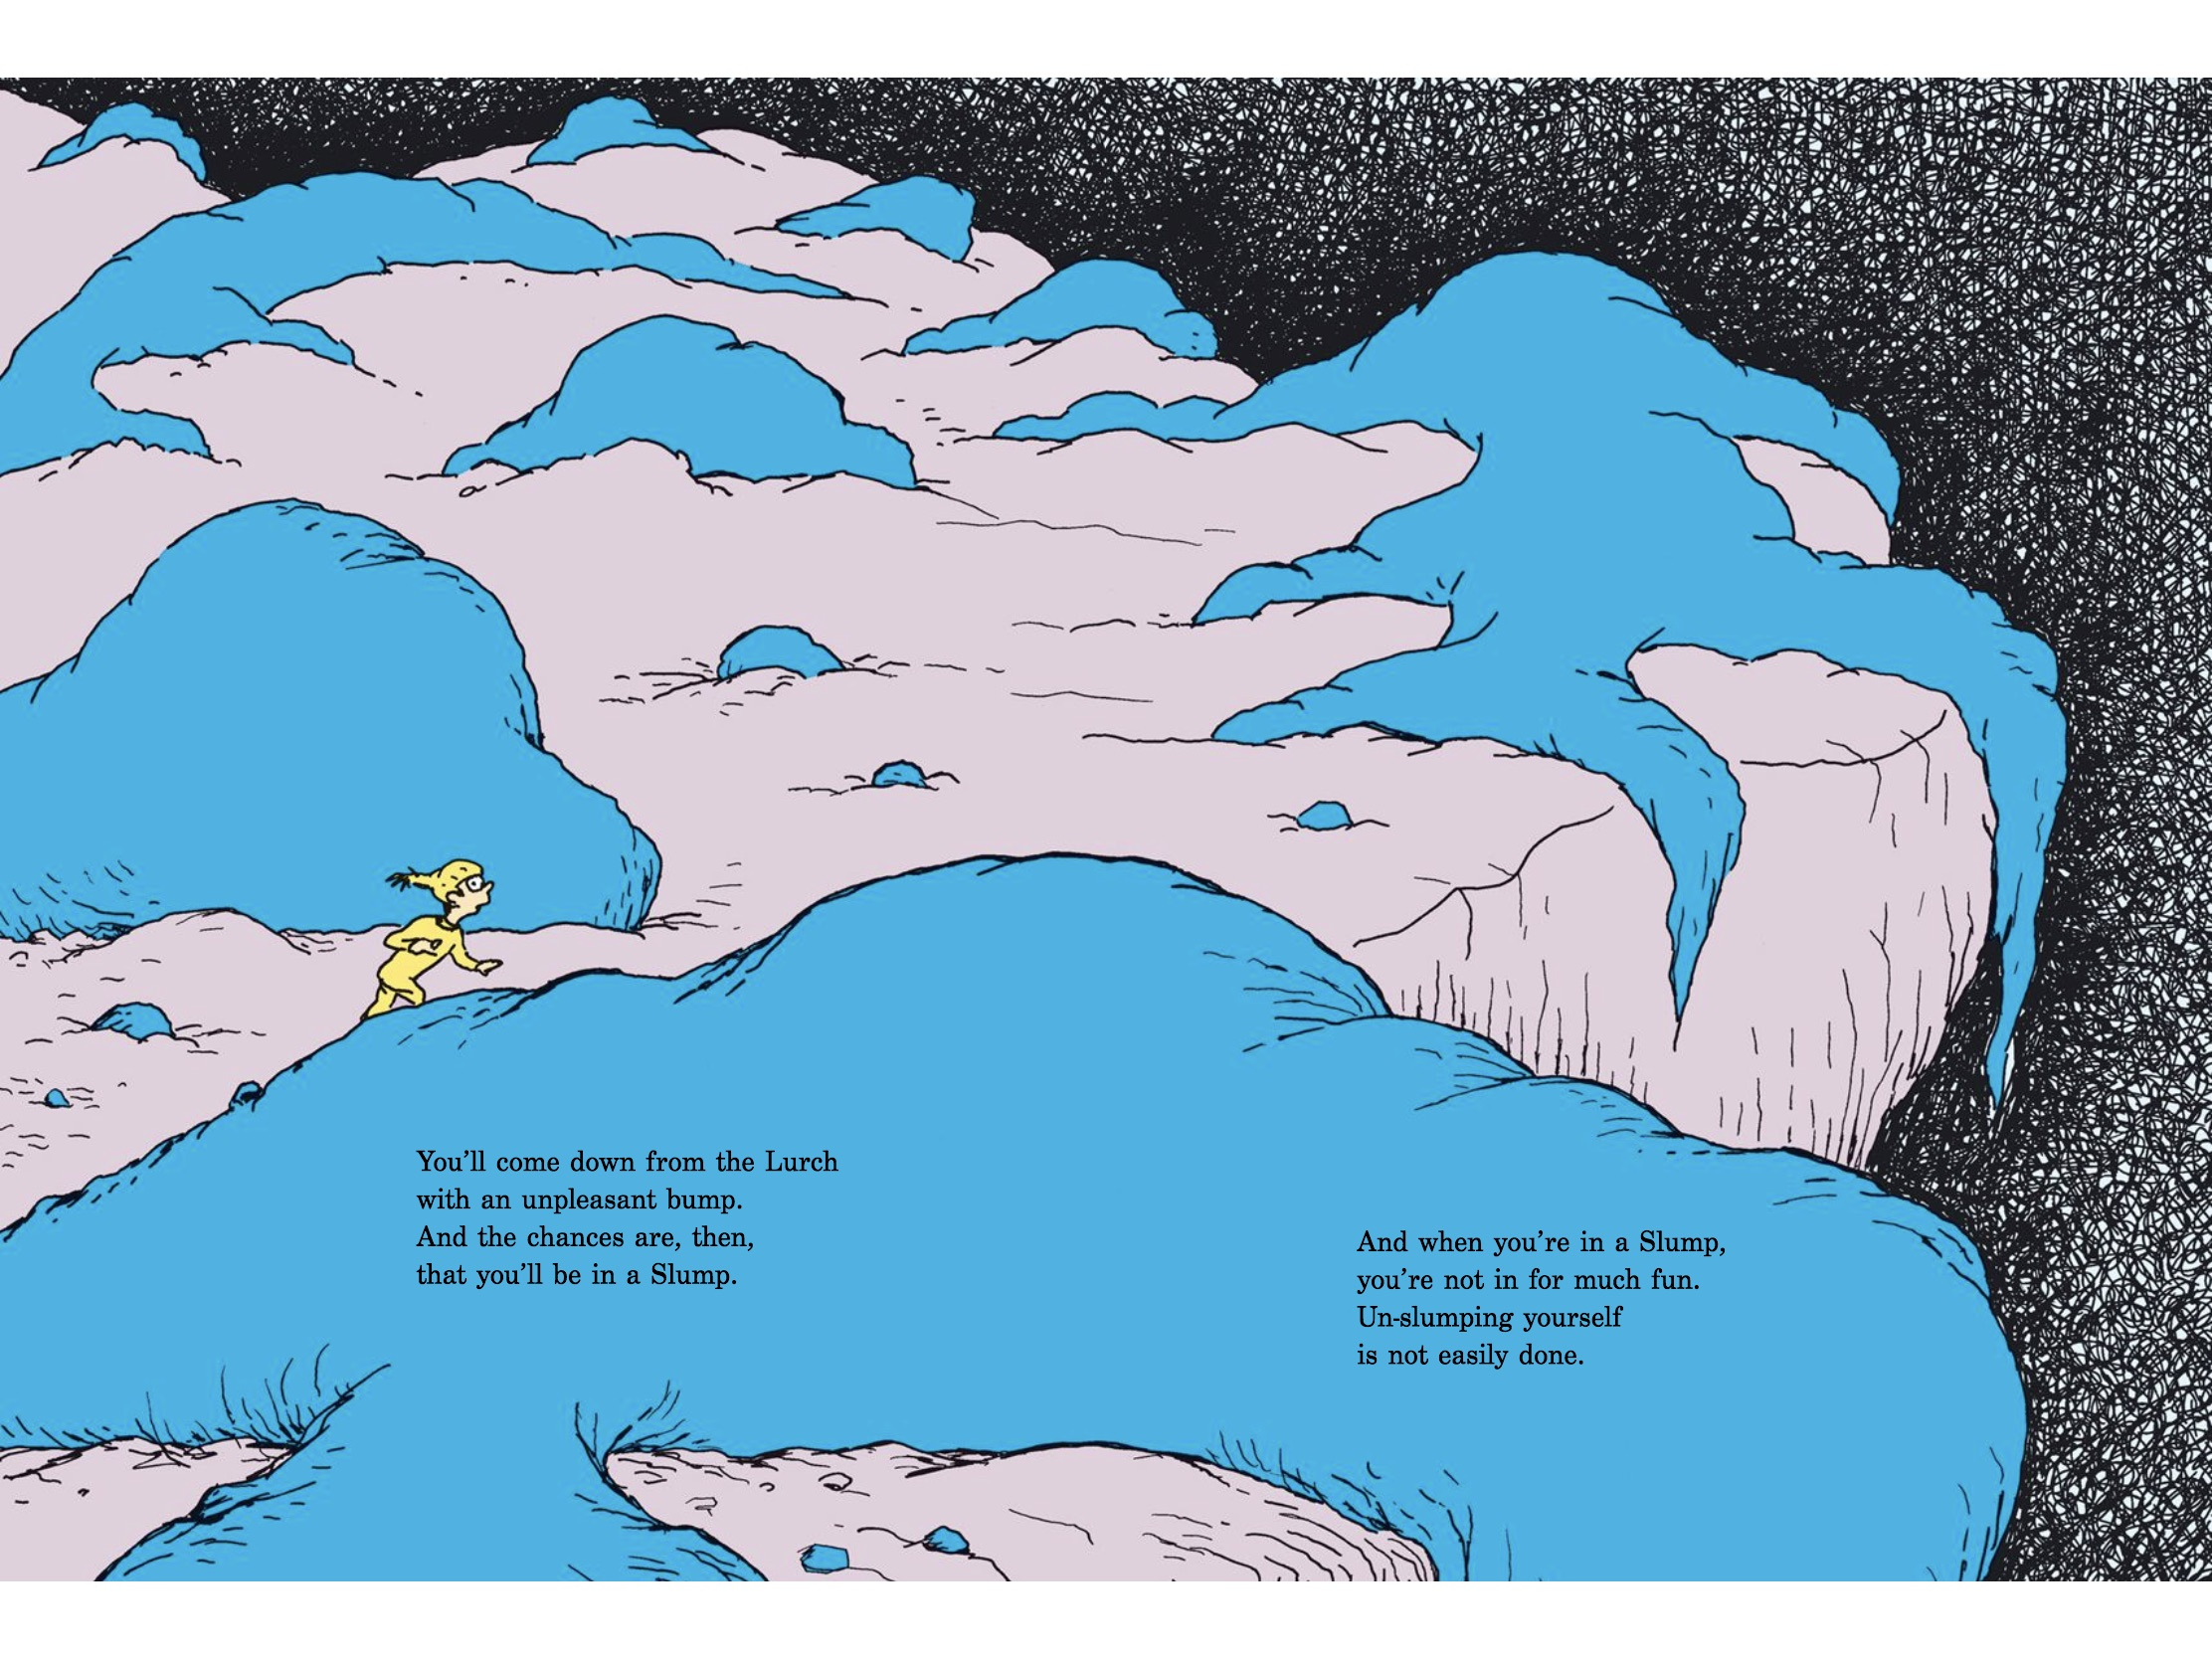 dr seuss - oh the places youll go10.jpg